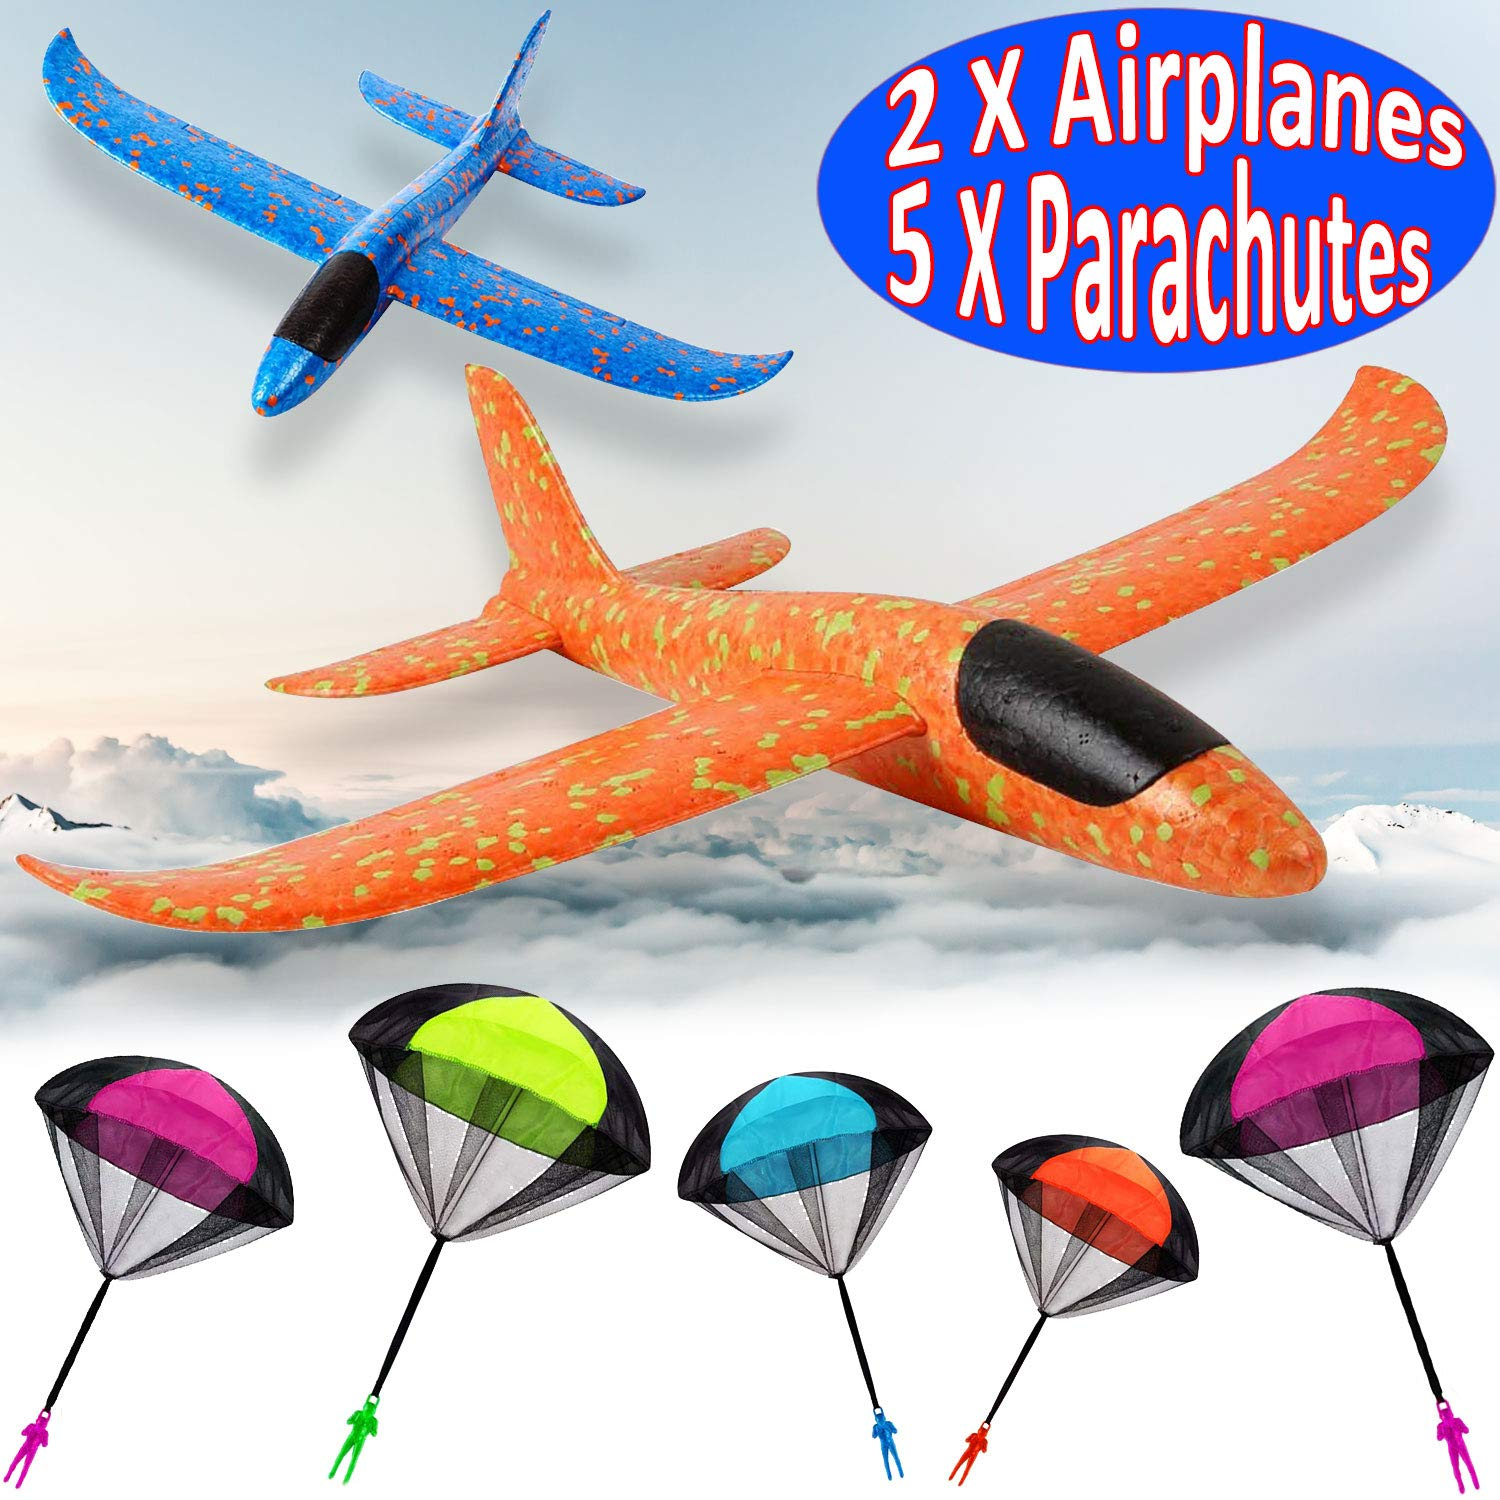 7 Pack Toy Airplane Glider for Kids, 2P 13.5'' Inch Throwing Foam Plane Kit Aircraft Jet+5P Toy Parachute Tangle Free Throwing, Outdoor Sports Flying Toys for Boys Girls Toddlers Teens Birthday Gift by iGeeKid (Image #1)